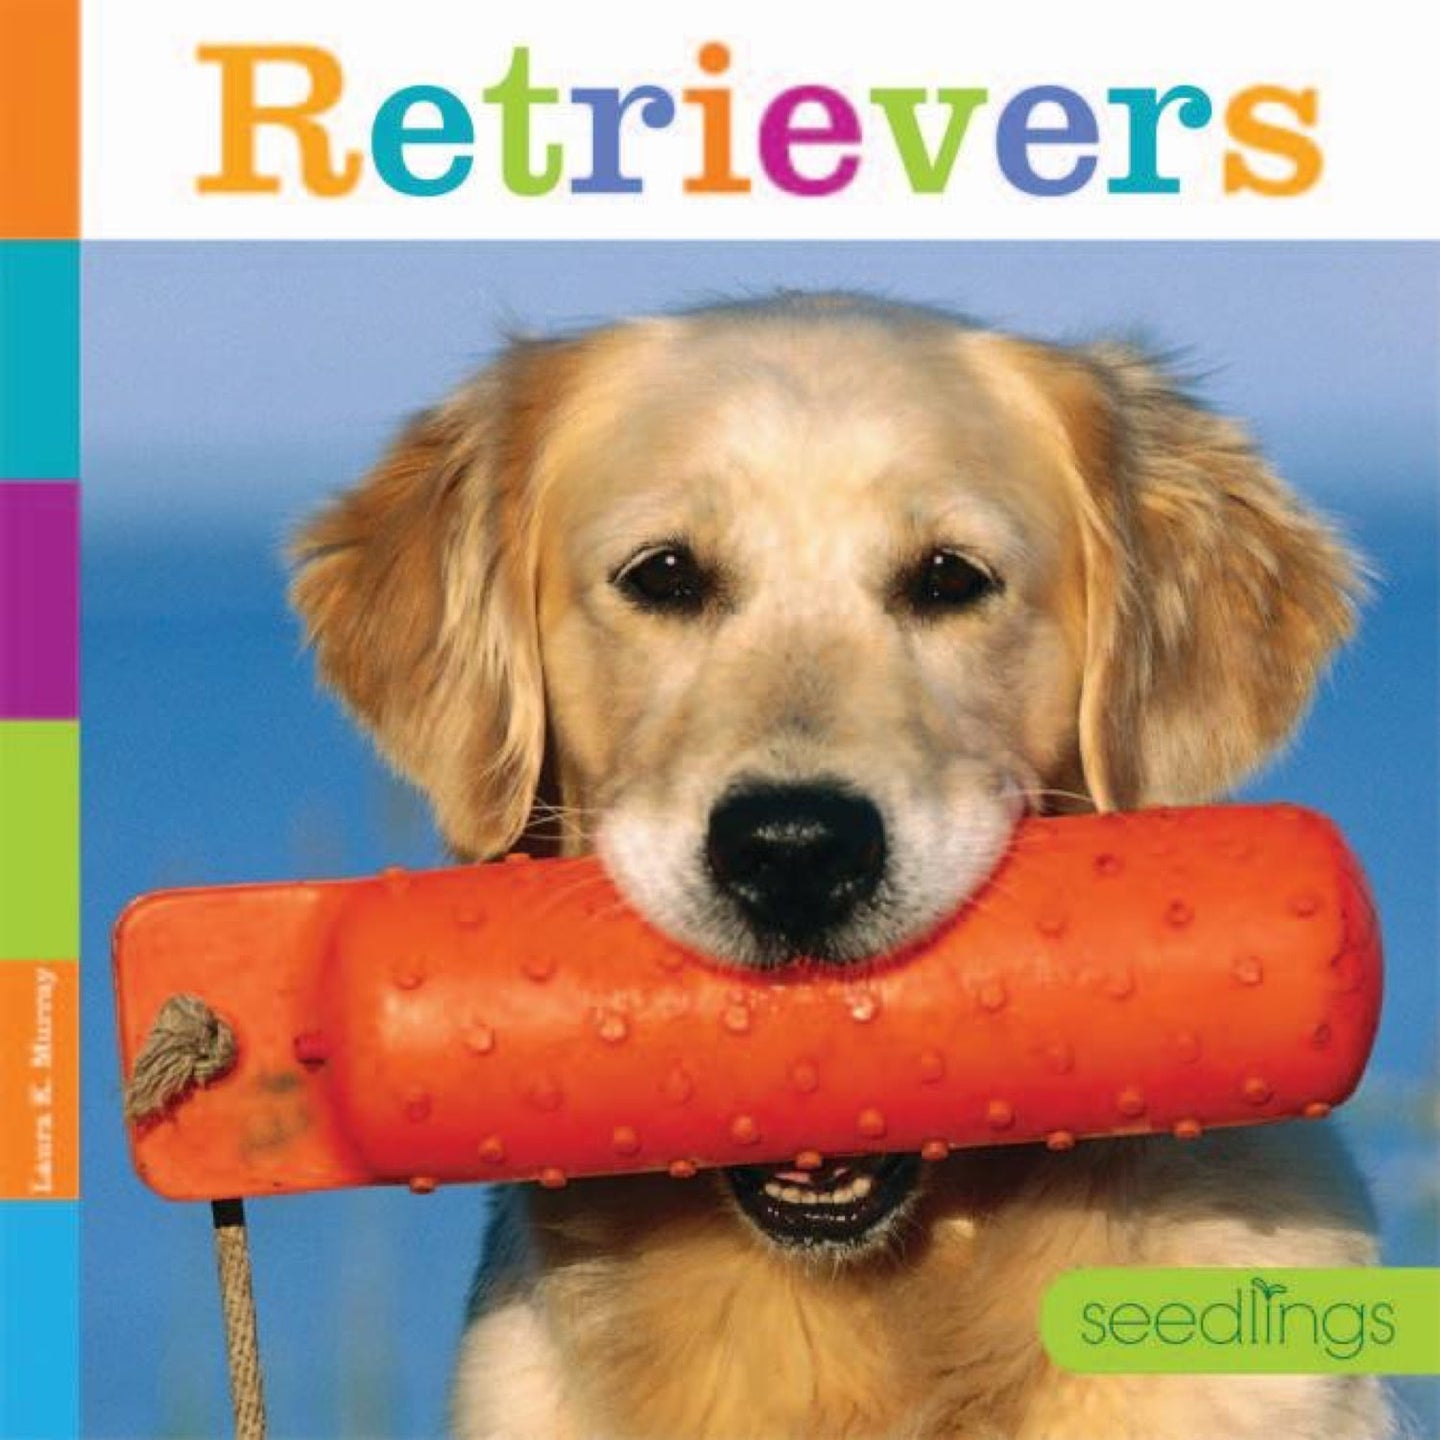 Seedlings: Retrievers